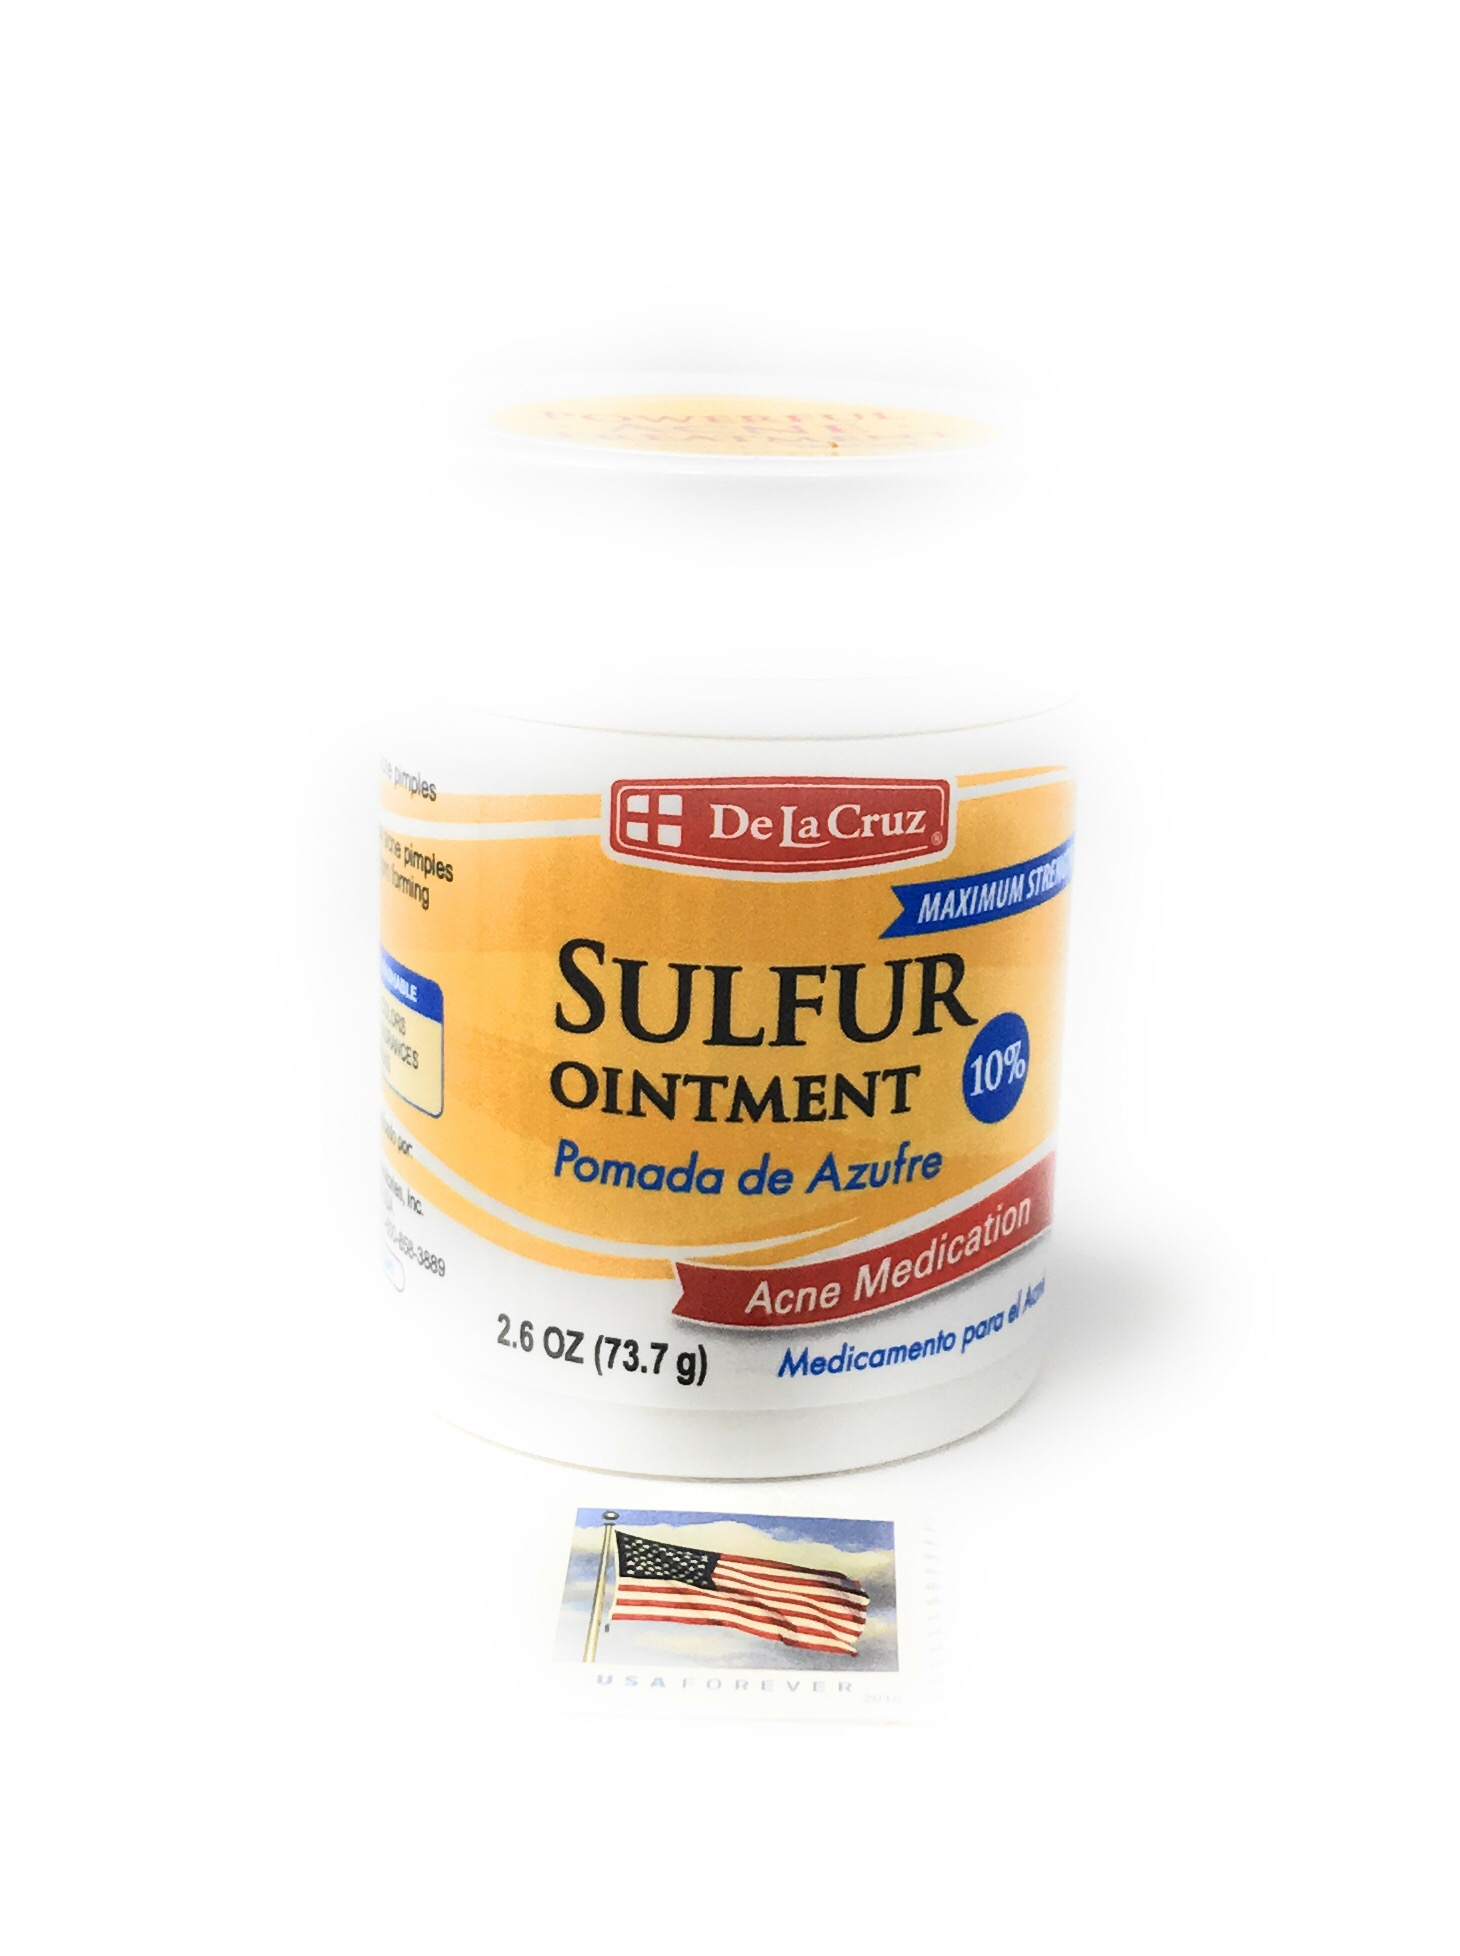 Free Shipping Popular Seller SULFUR OINTMENT 10 % POWERFUL ACNE MDICATION 2.6 OZ. Magic Shave Bump Rescue Exfoliating Cleanser 5 Fl Oz + Spot Treatment, 0.33 oz + Schick Slim Twin ST for Dry Skin